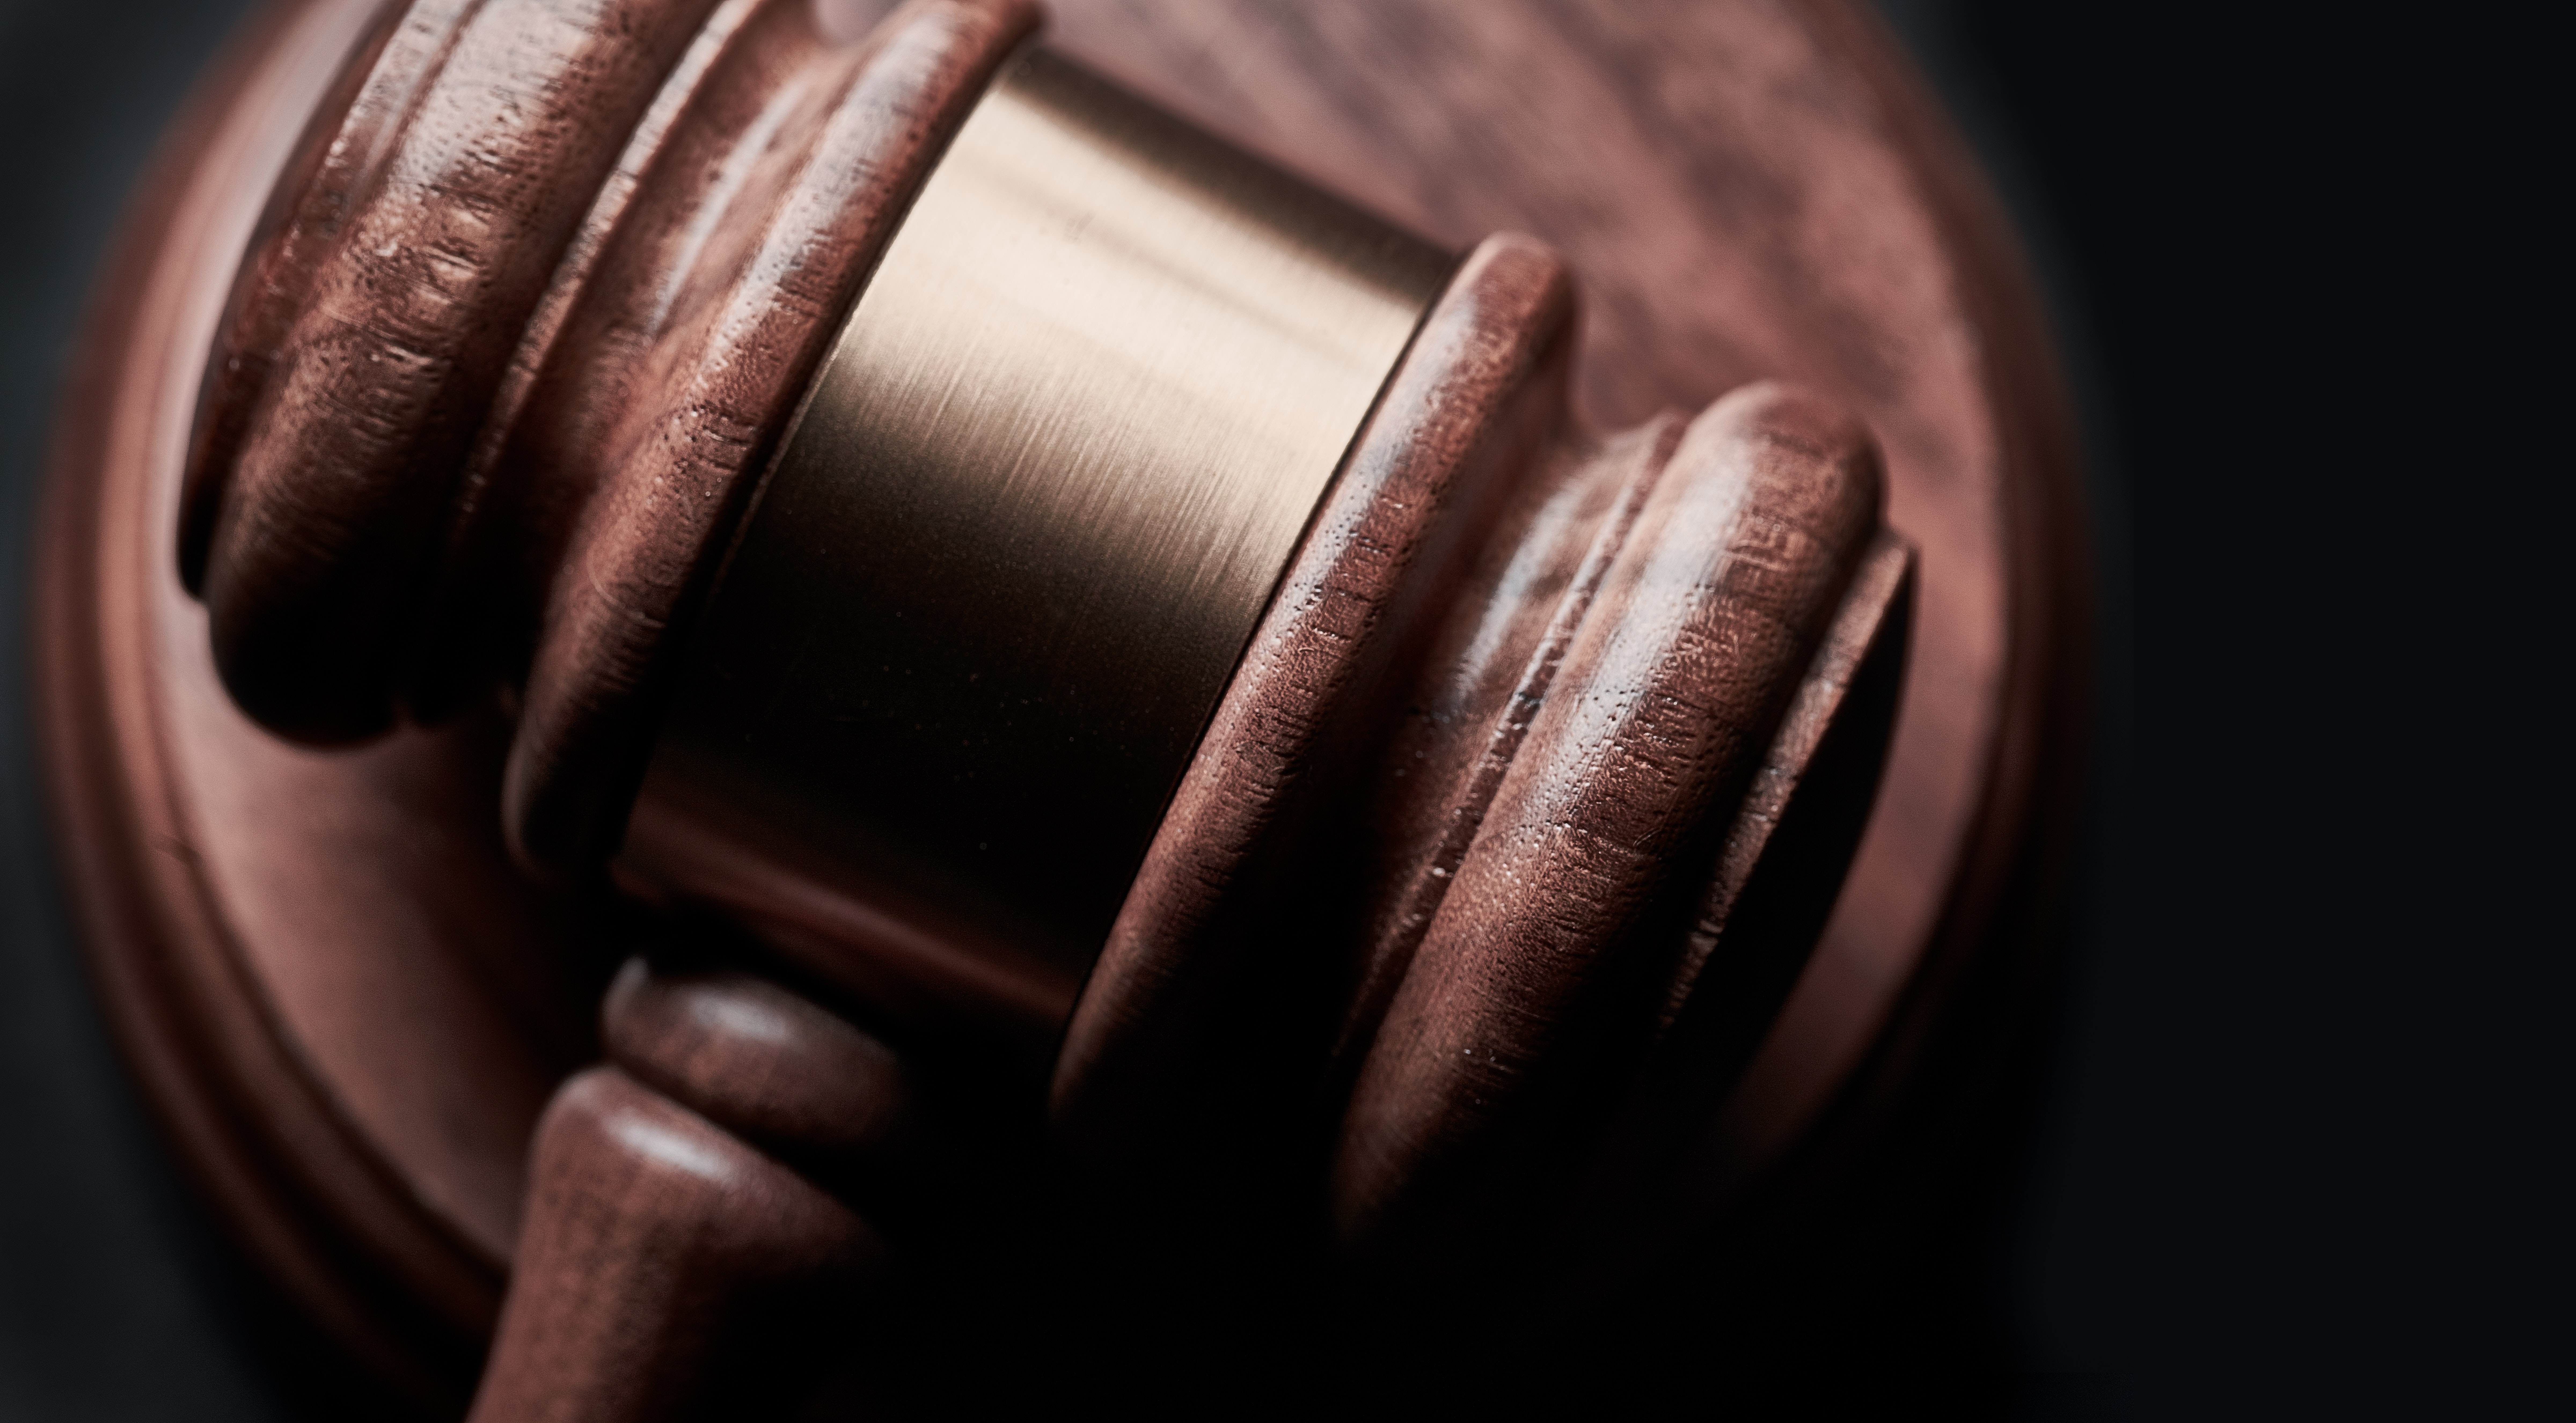 close up of wooden gavel from a court room